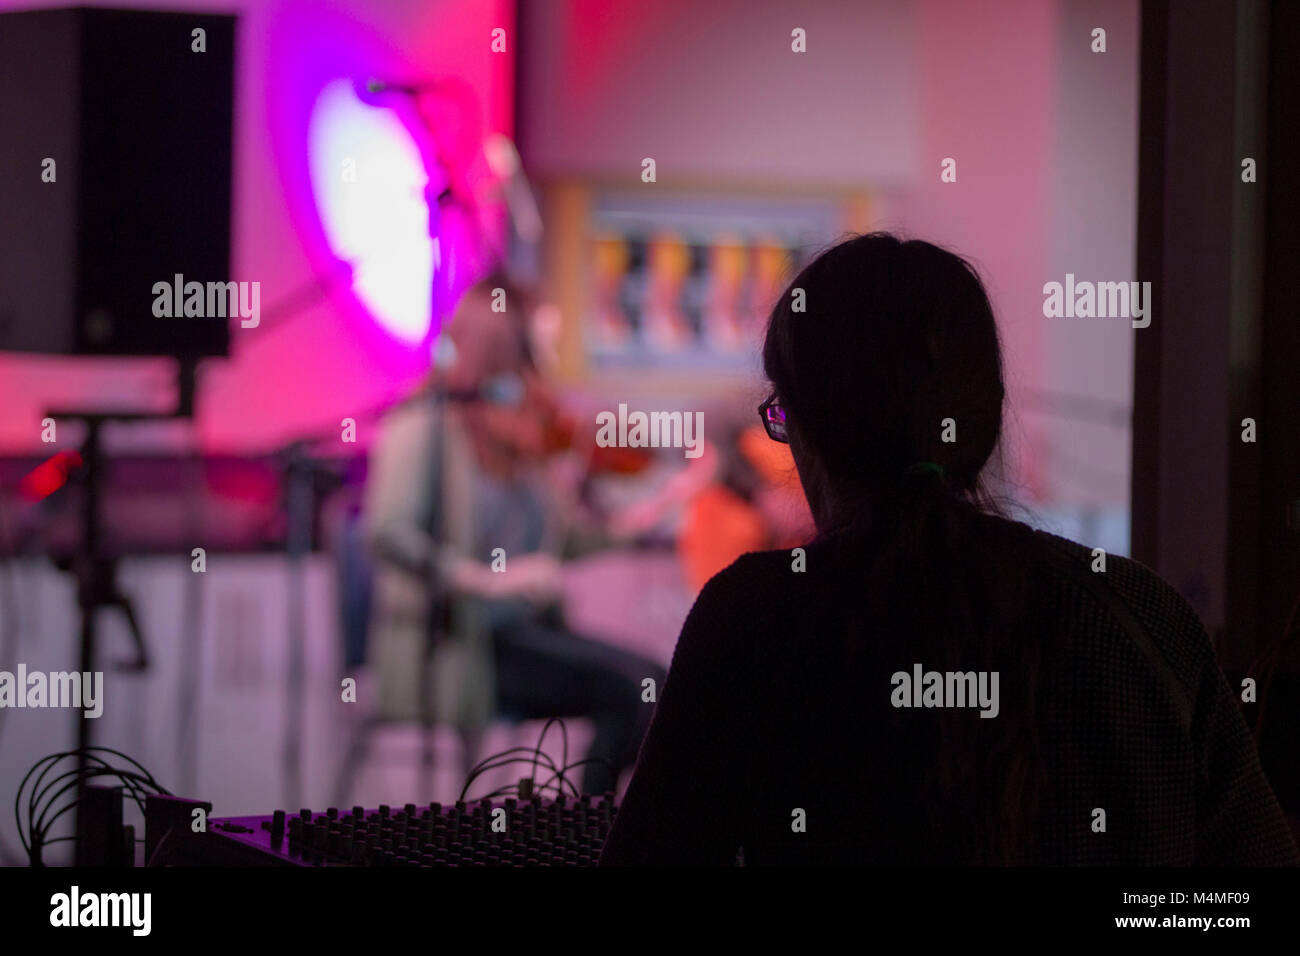 recording technicians at mixing desk during concert Stock Photo